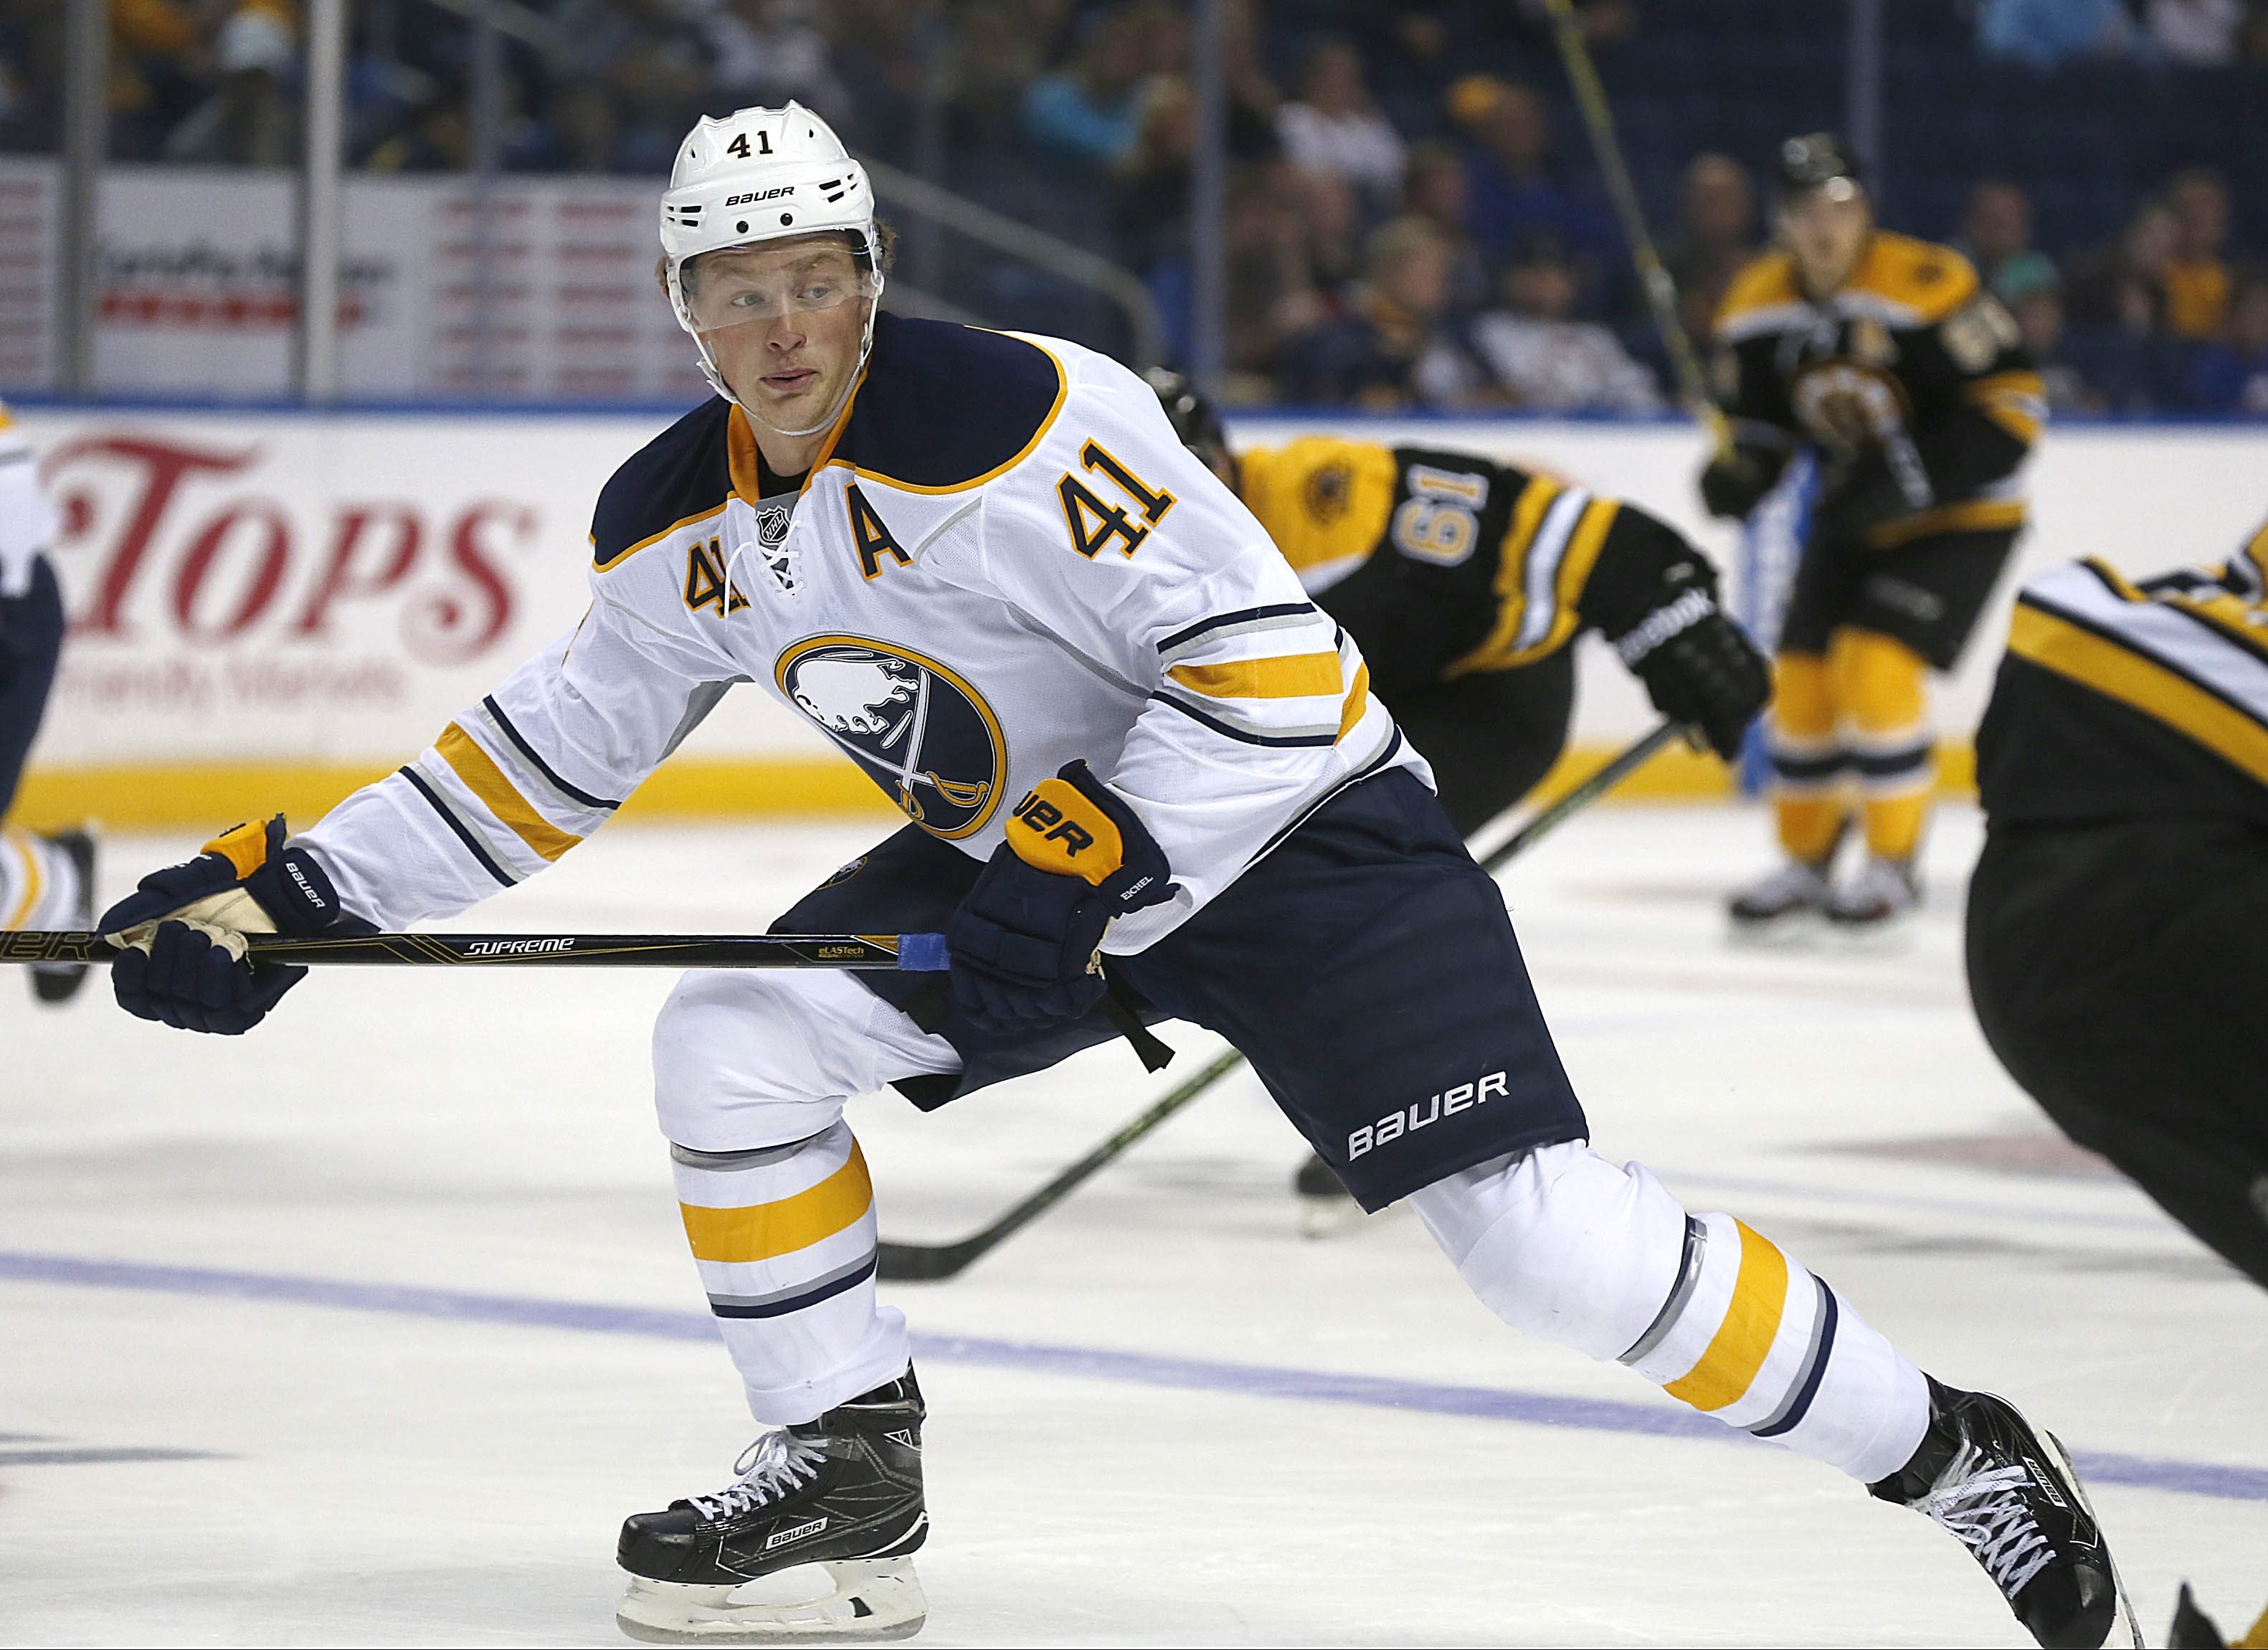 Jack Eichel wants to go out and make an immediate impression when the Sabres open the season Thursday.